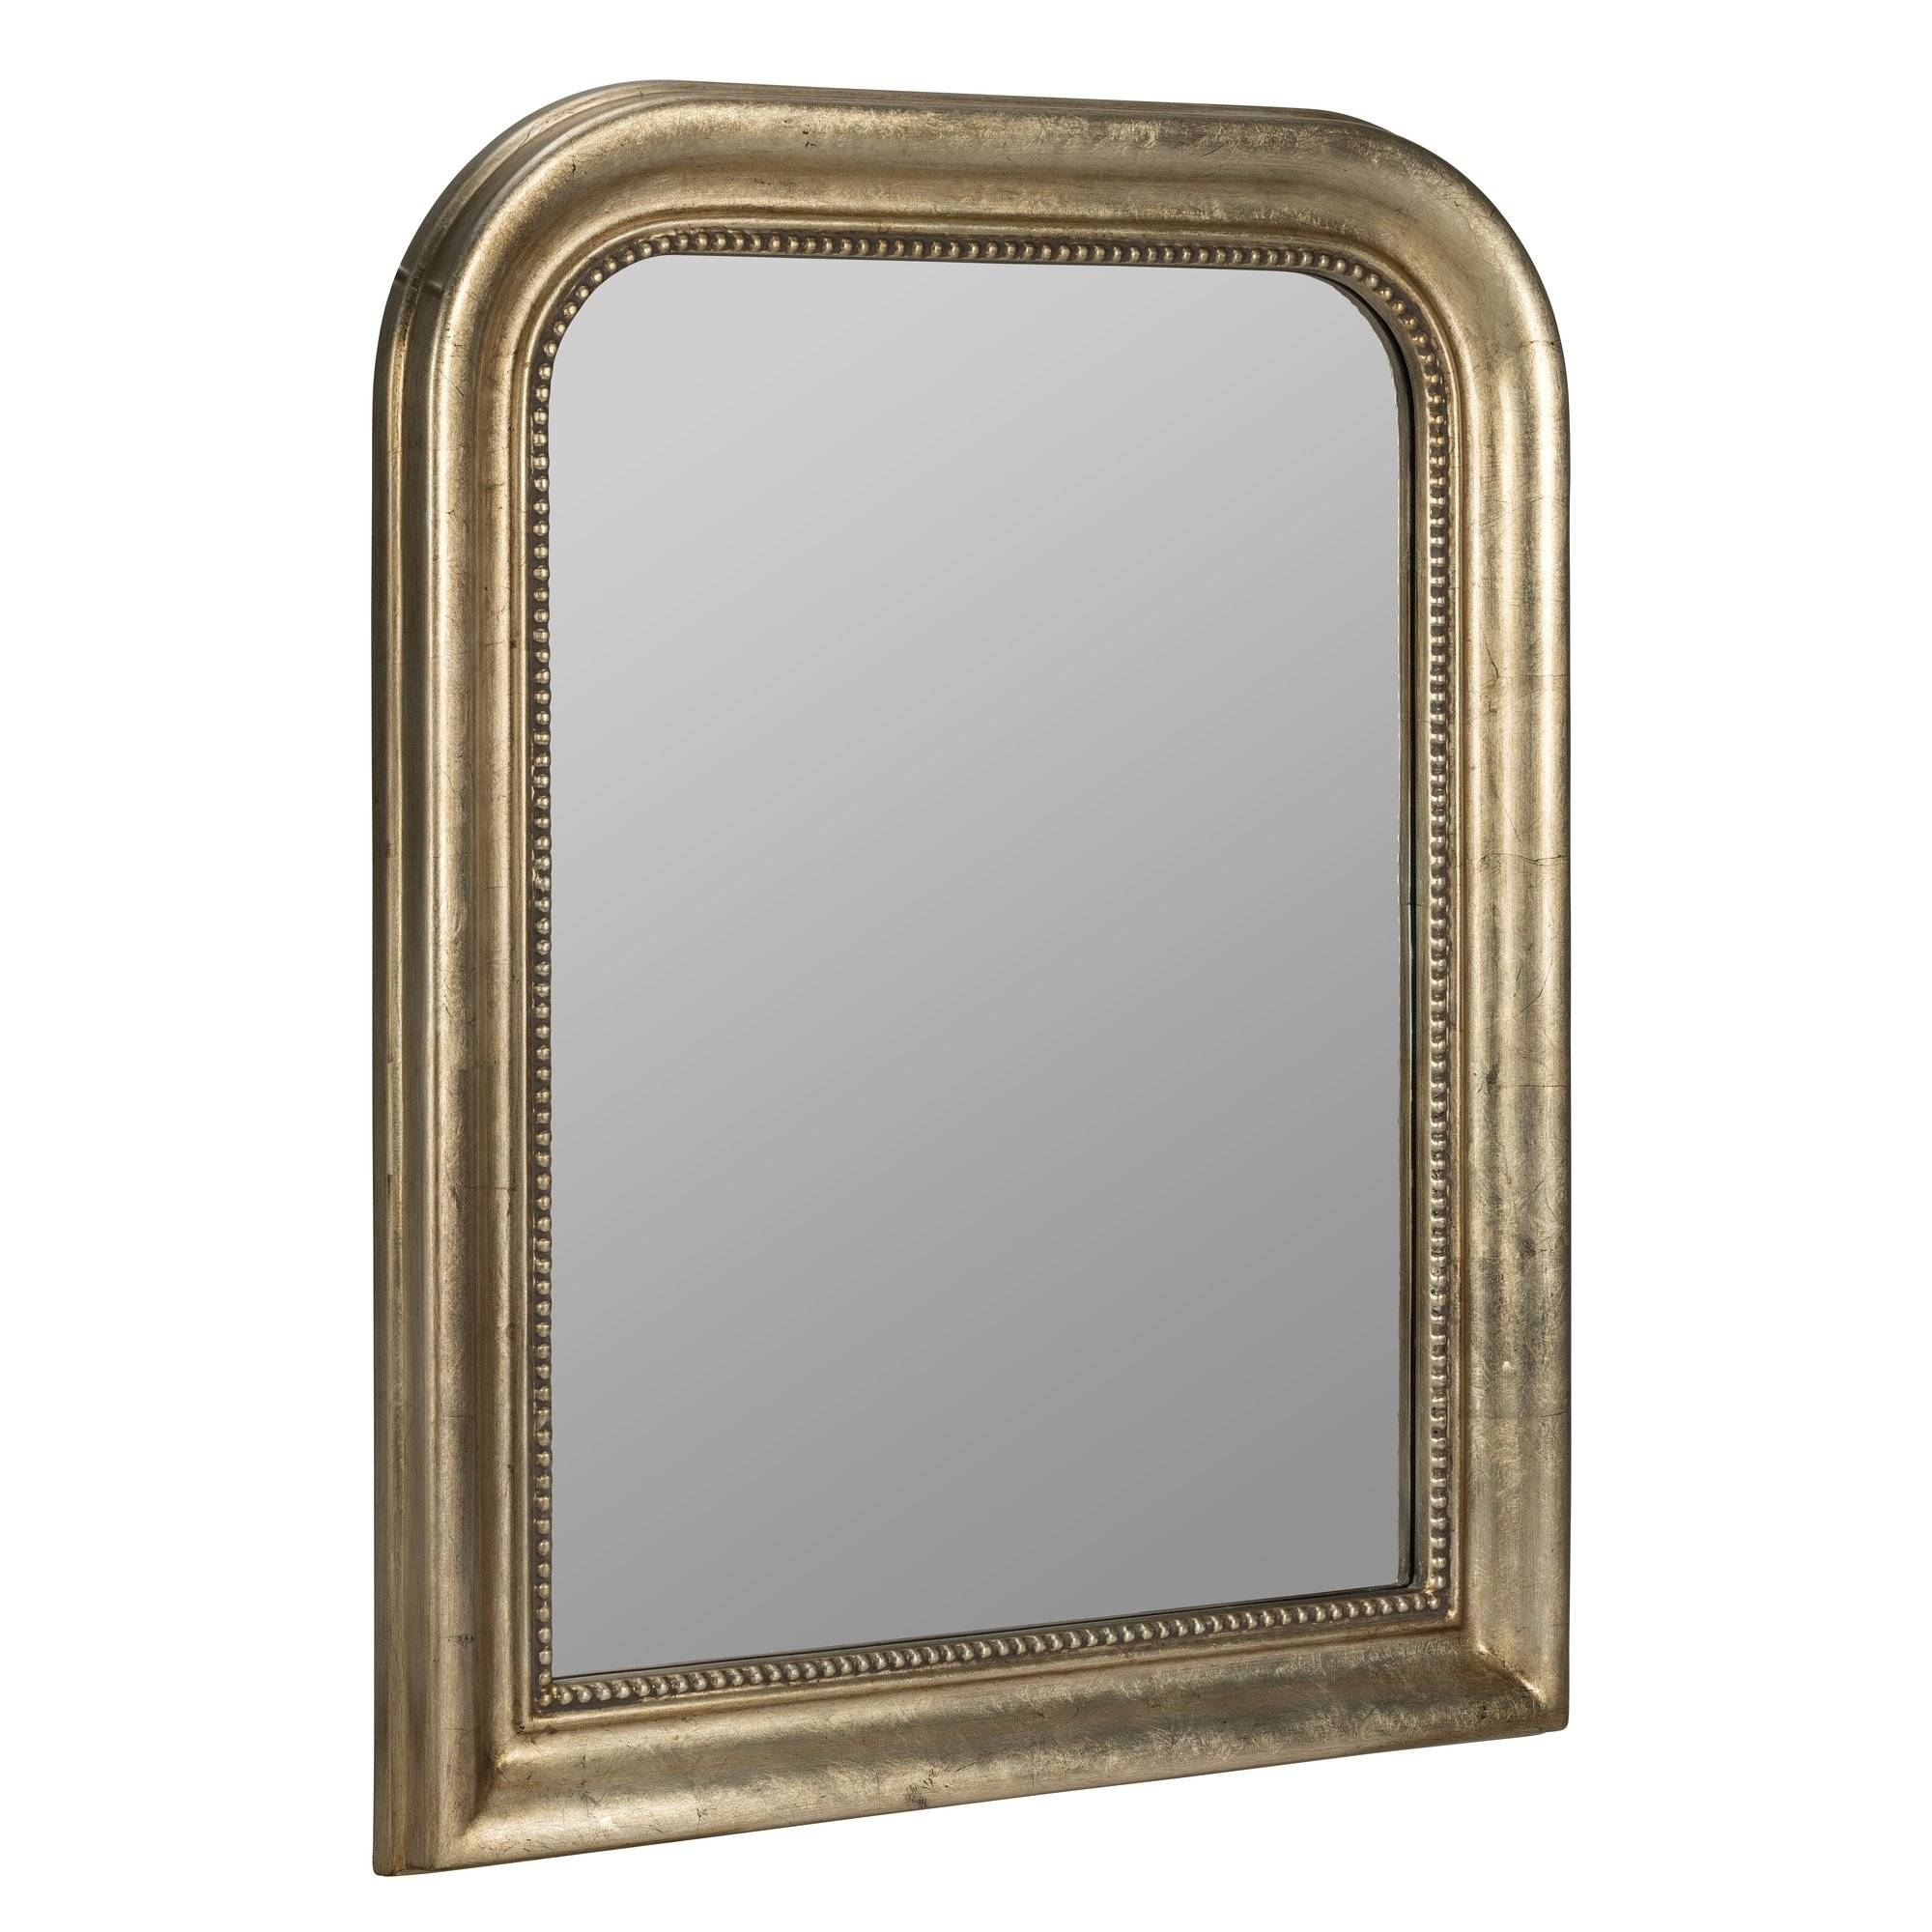 Darby Home Co Antique Champagne Wall Mirror & Reviews | Wayfair pertaining to Champagne Mirrors (Image 10 of 25)